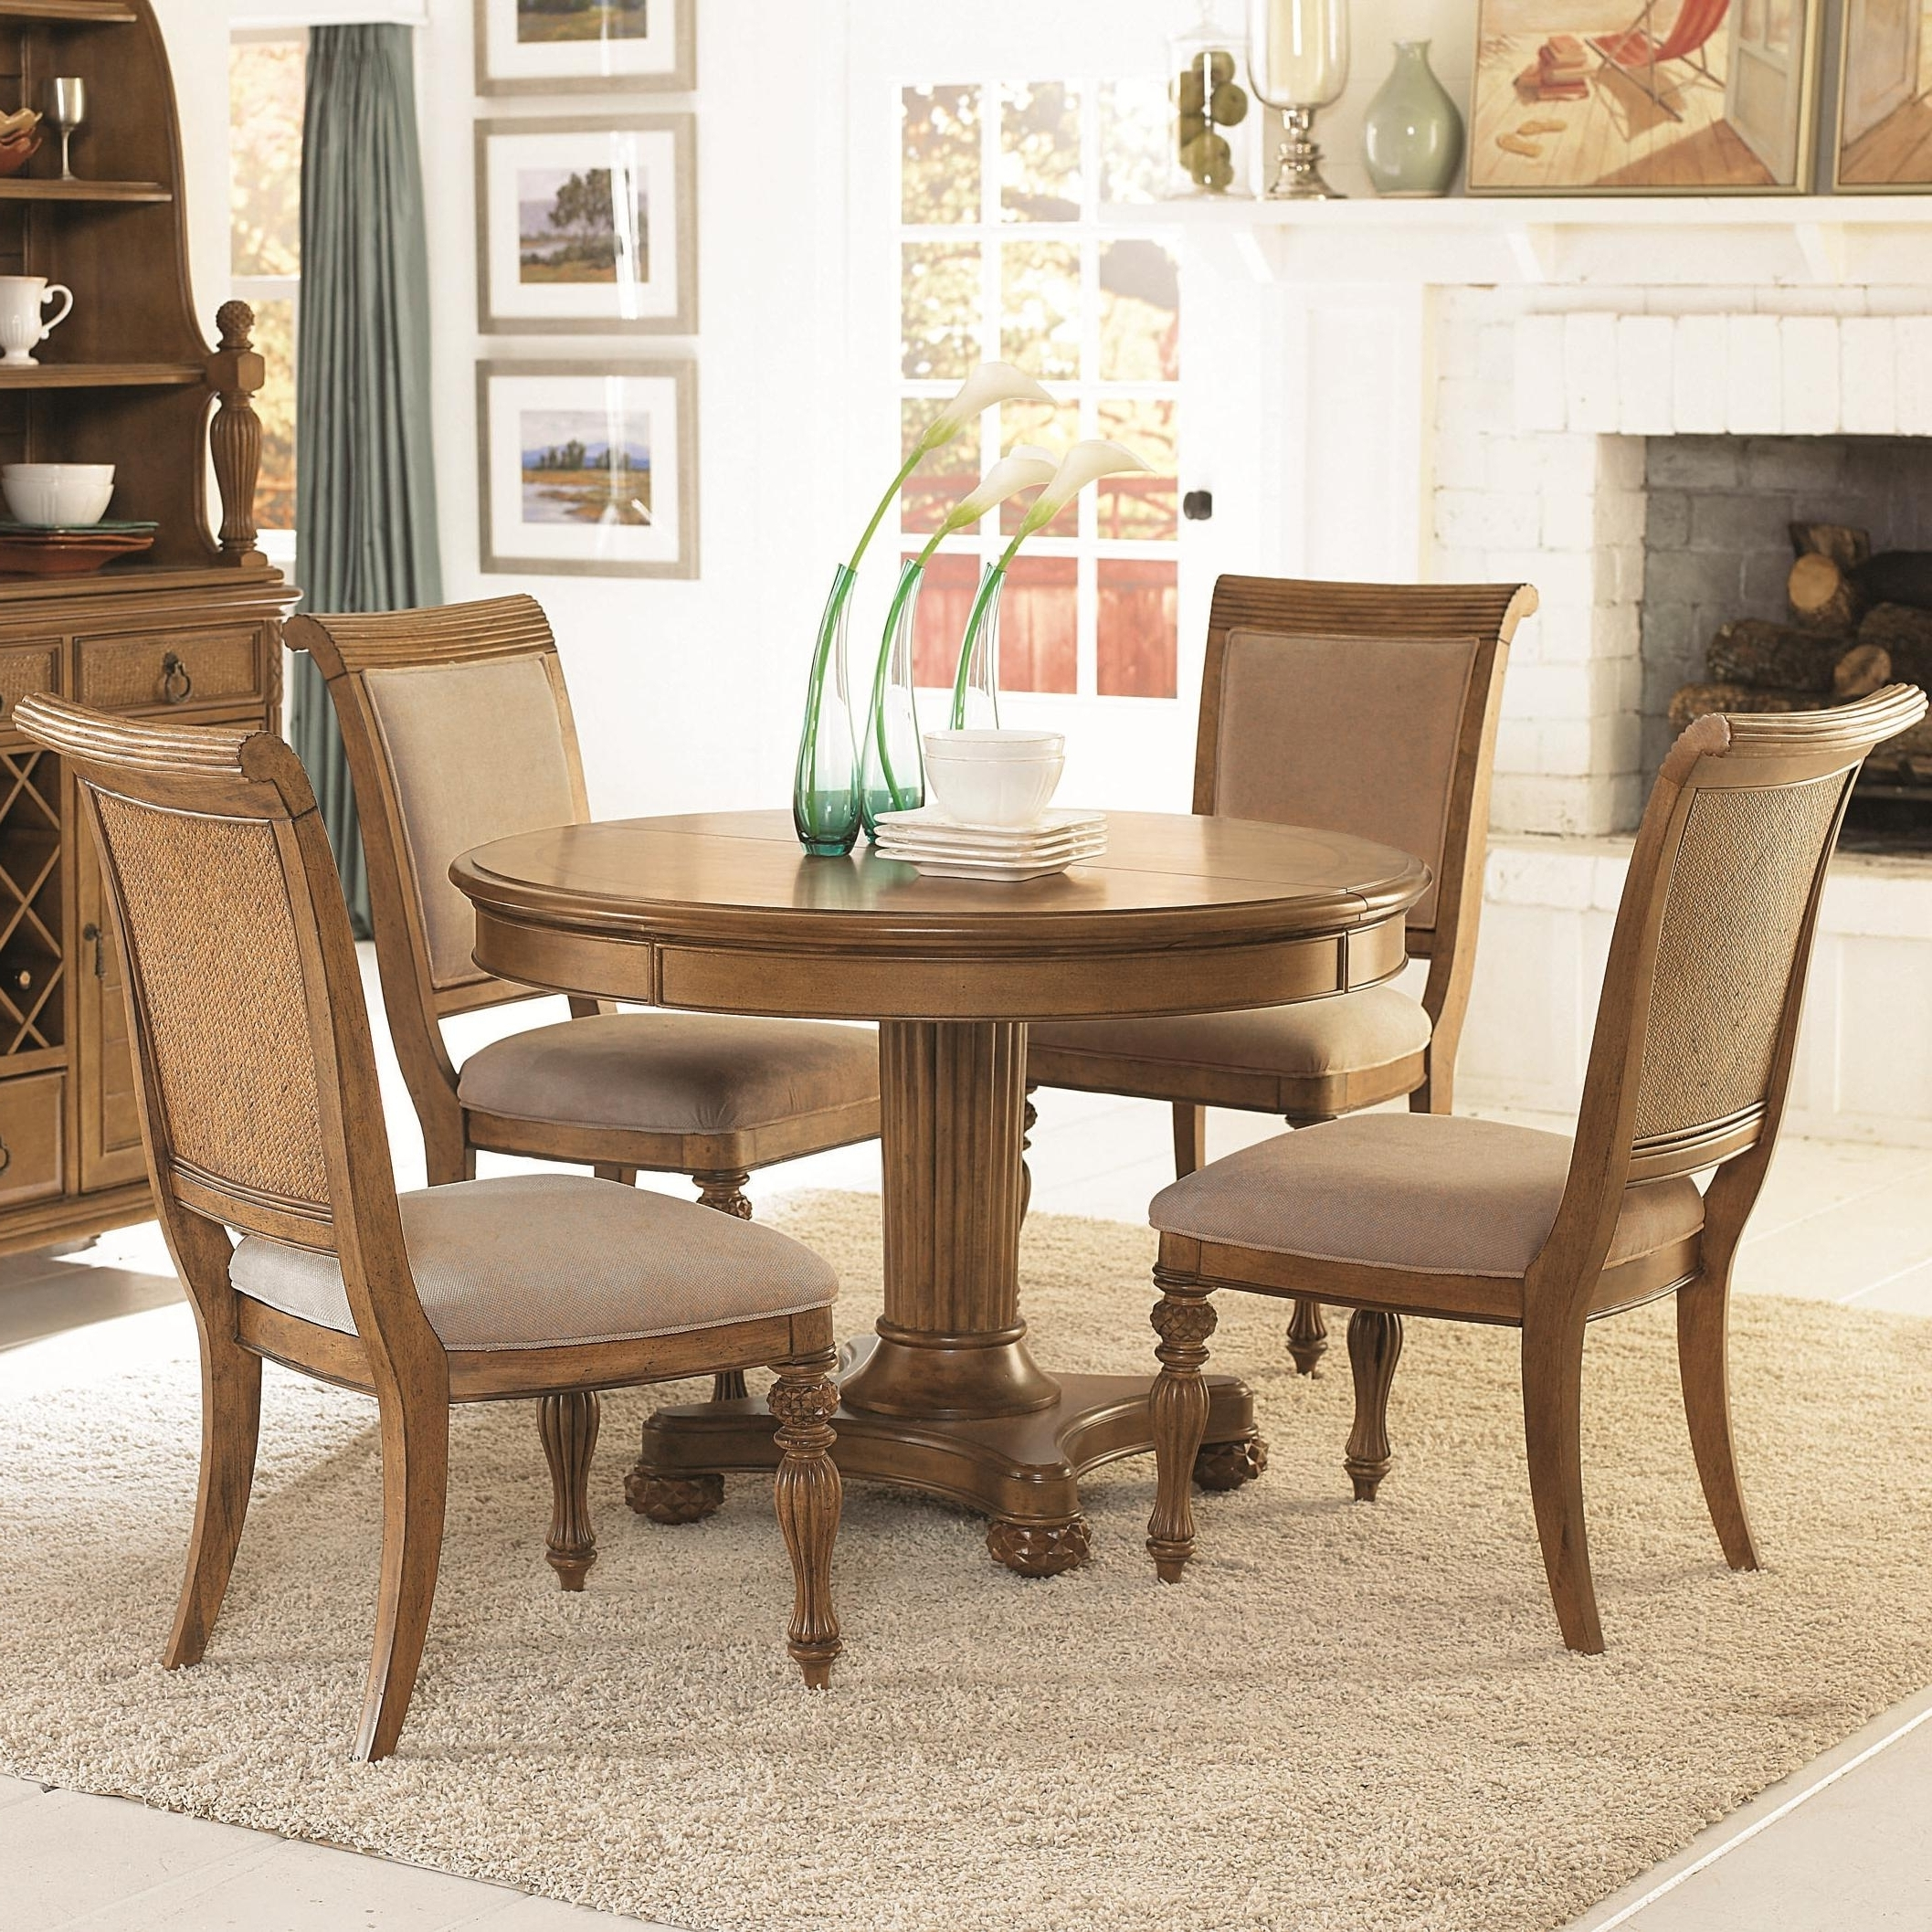 Craftsman 5 Piece Round Dining Sets With Side Chairs For Current 5 Piece Round Pedestal Dining Table Side Chairs With Upholstered (View 13 of 25)